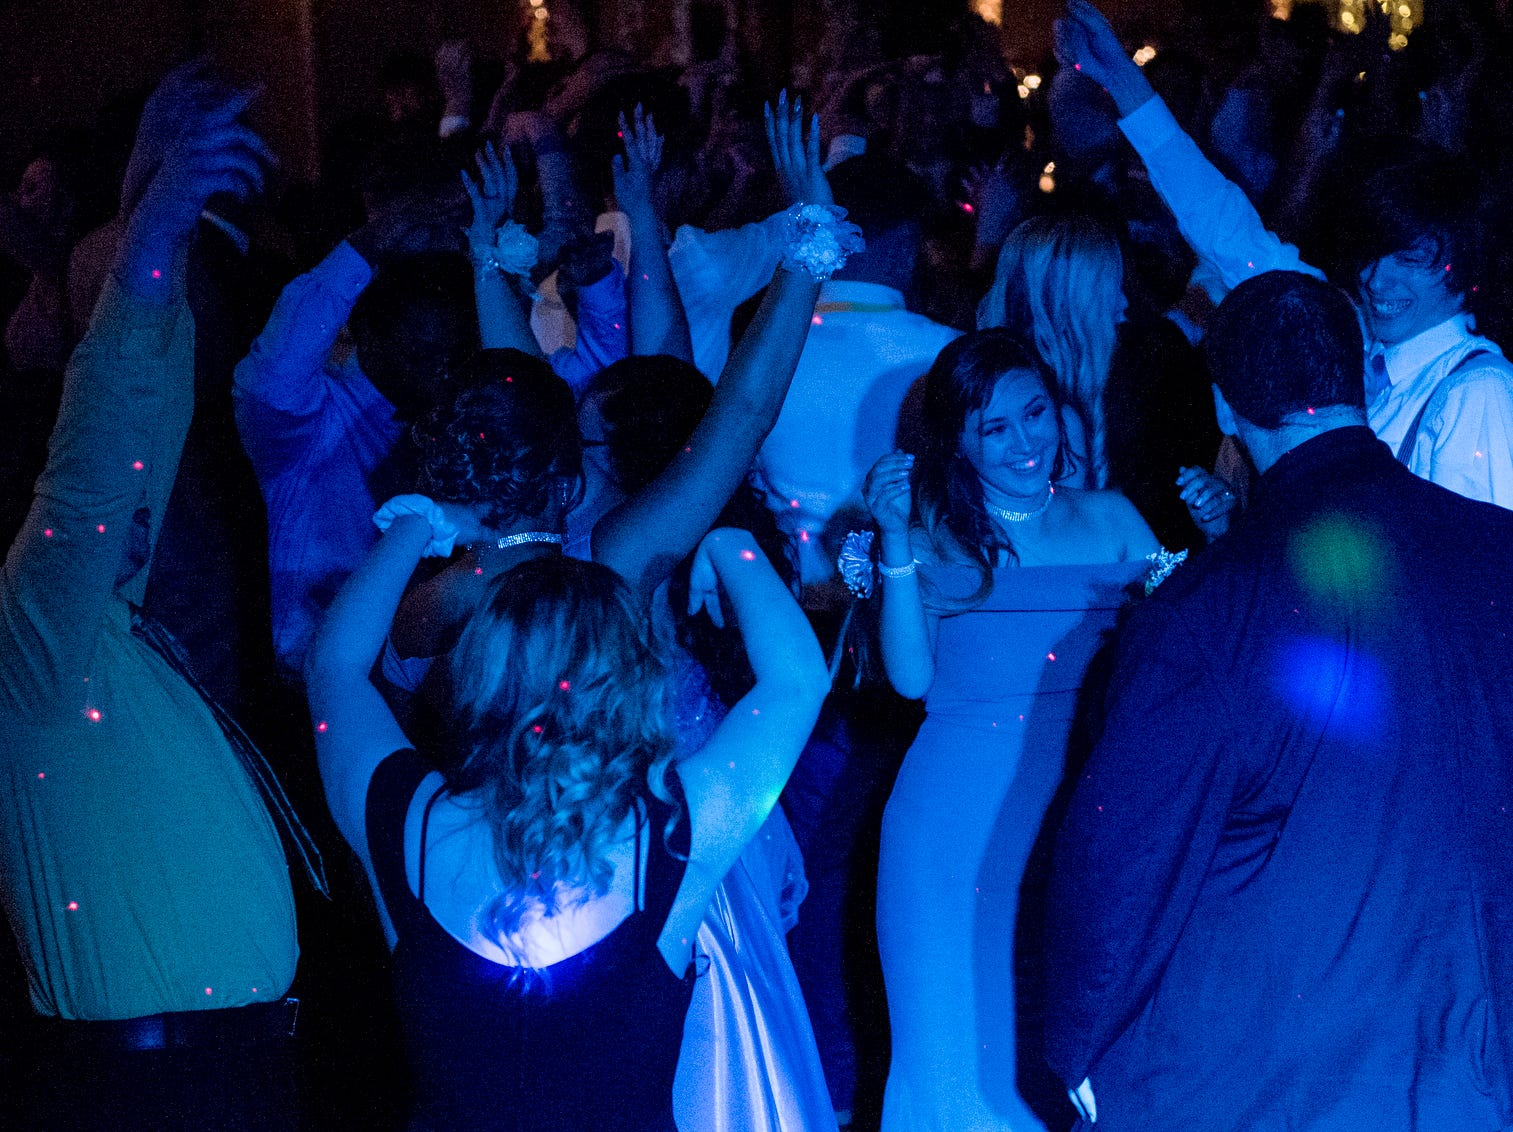 """Jasmine Richardson, center right, dances with her boyfriend Mason Bradley, far right, and their friends during Central High School's """"Uptown Night"""" themed prom held at the Vanderburgh 4-H Center auditorium in Evansville, Ind., Saturday, April 27, 2019."""